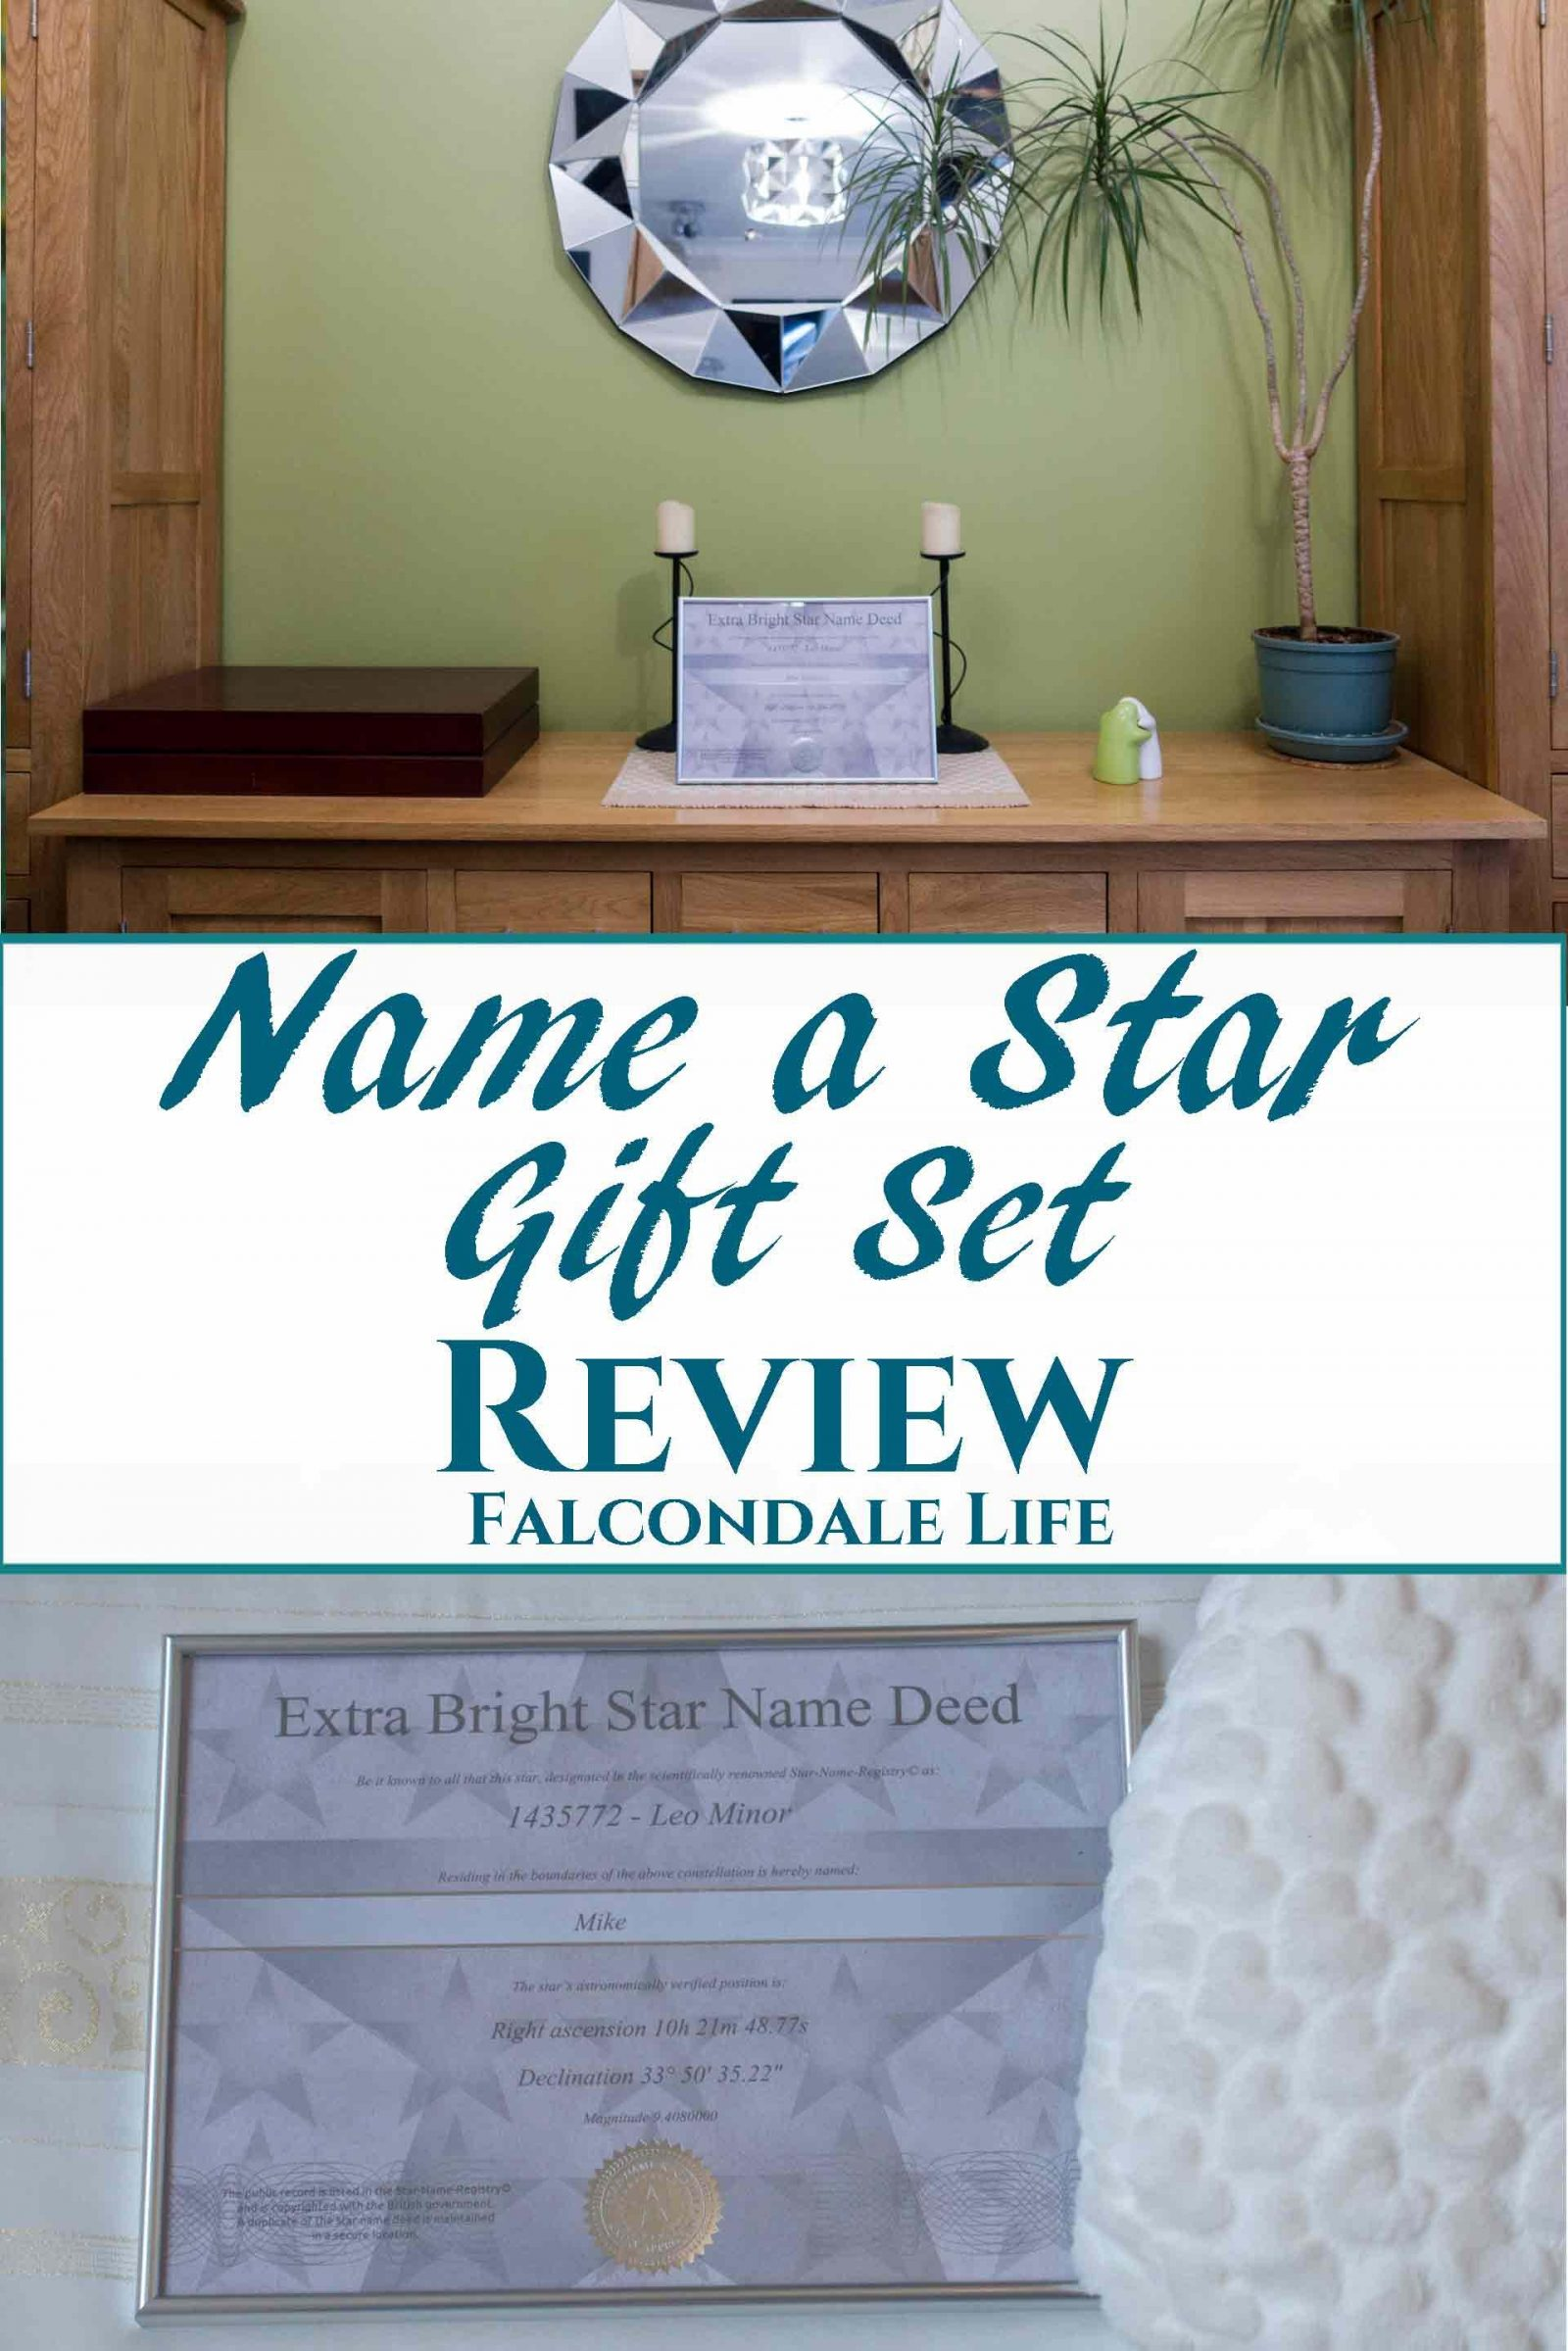 Name a Star Gift Set Review on Falcondale Life blog. Name a star for someone you love with the Star Name Registry. Review of the Bright Star Gift set with framed certificate, ideal gift for astronomy fans.